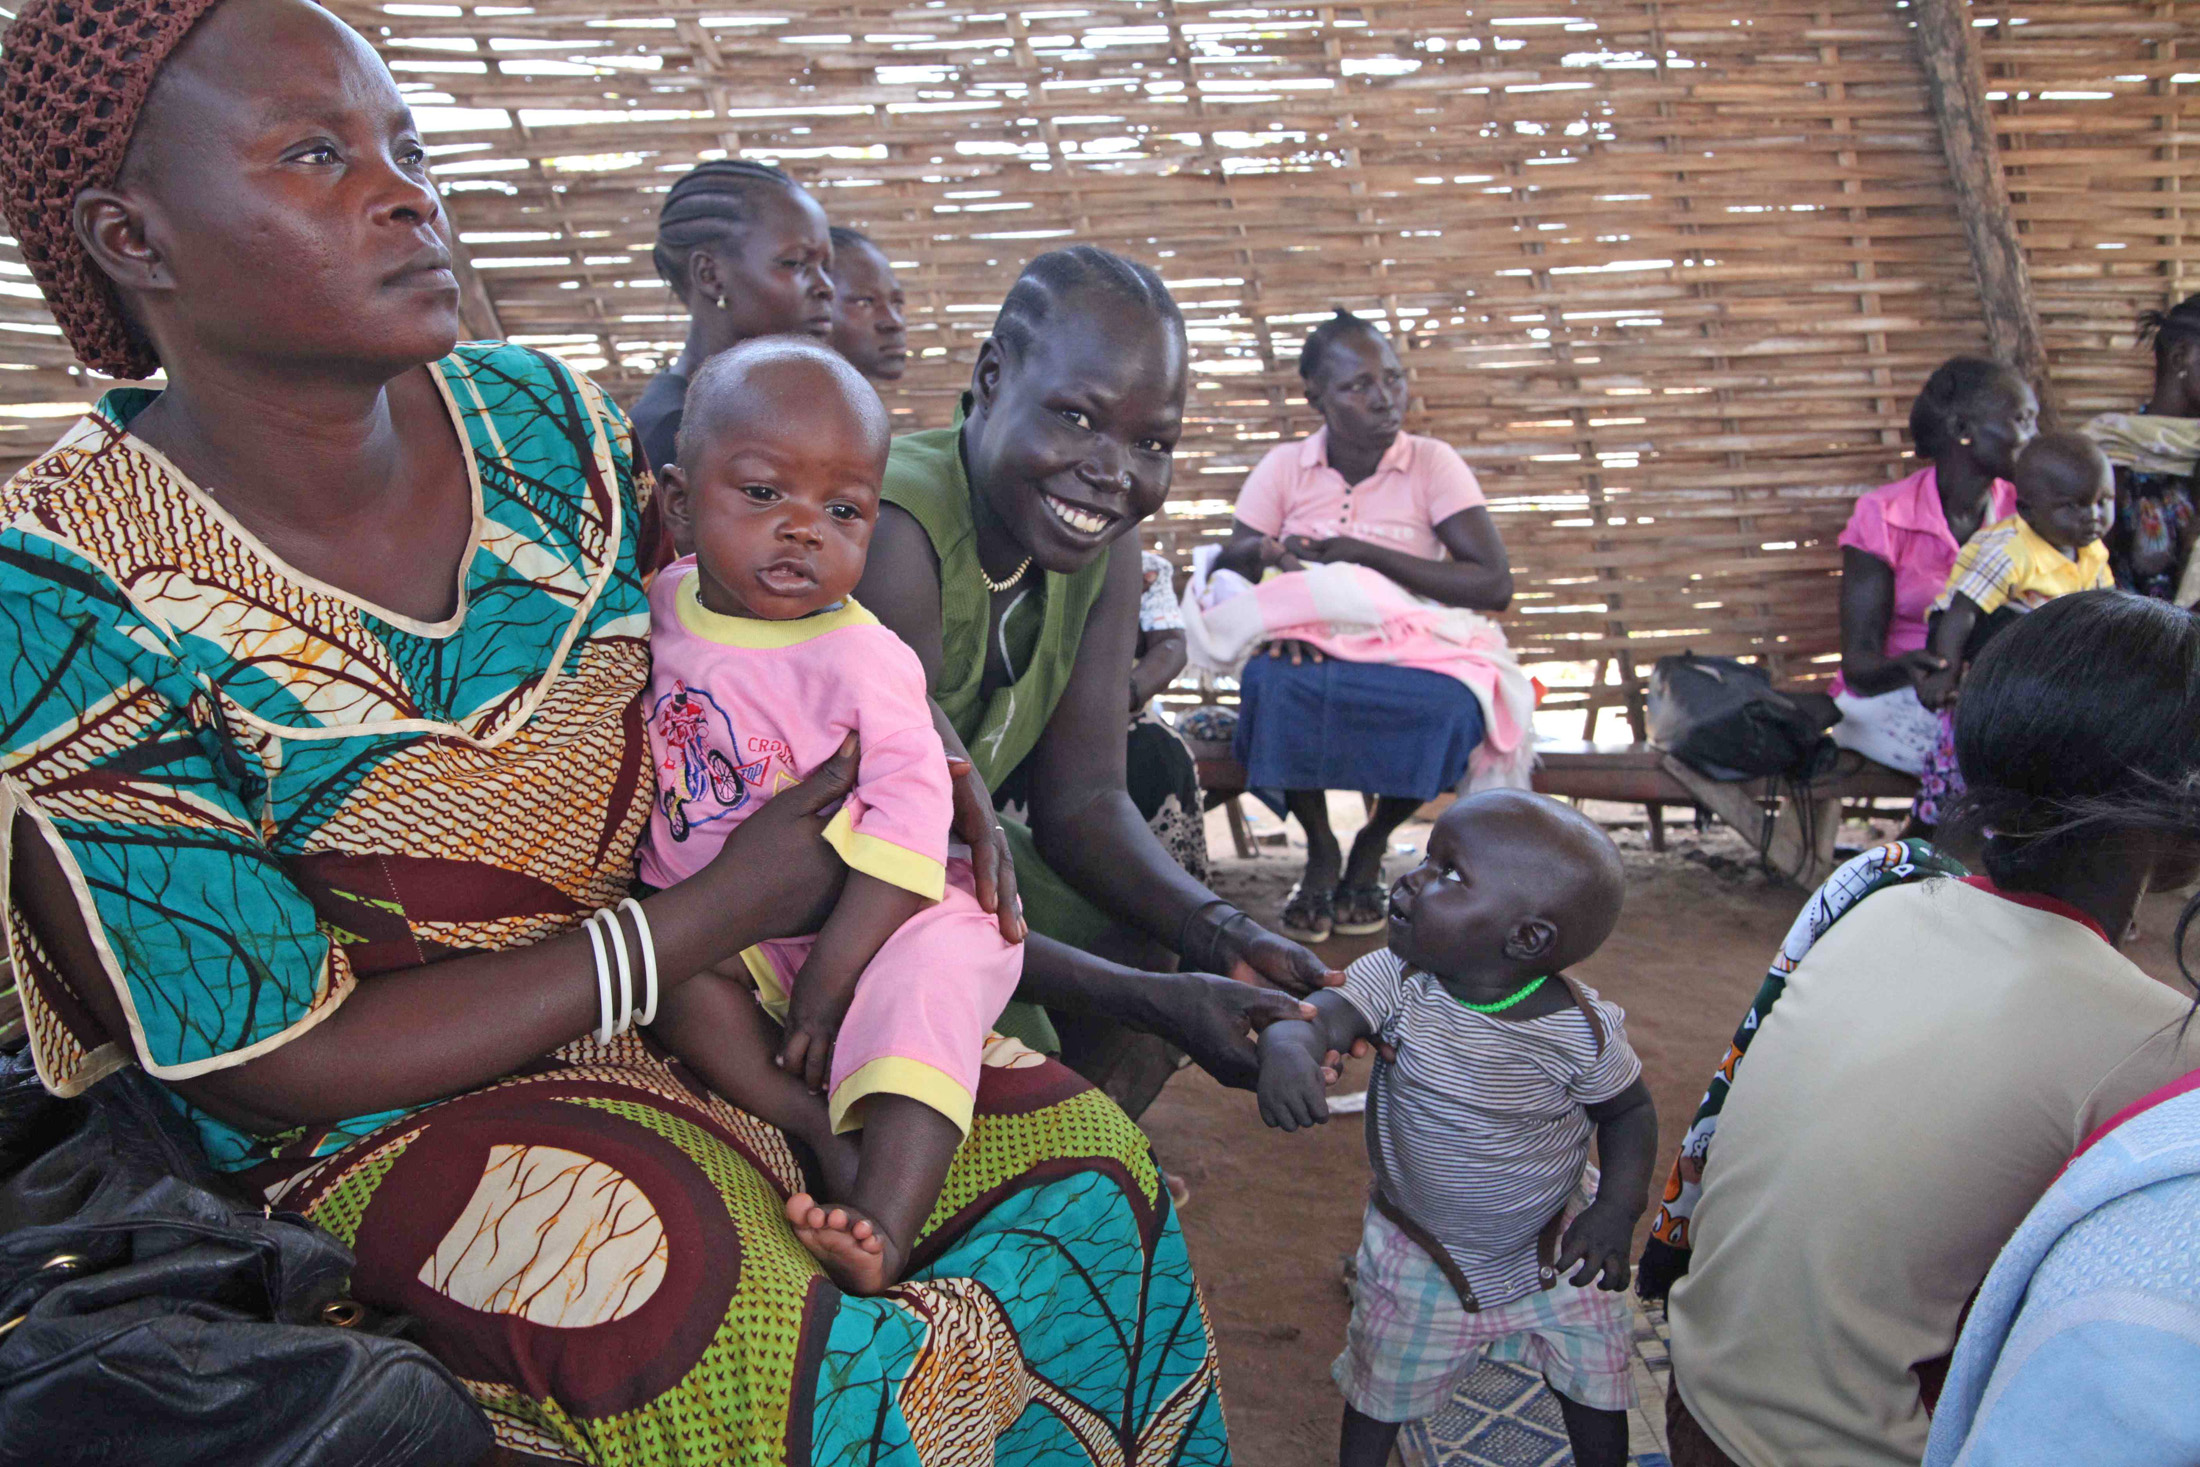 Women in South Sudan have never had the choice about when to have children